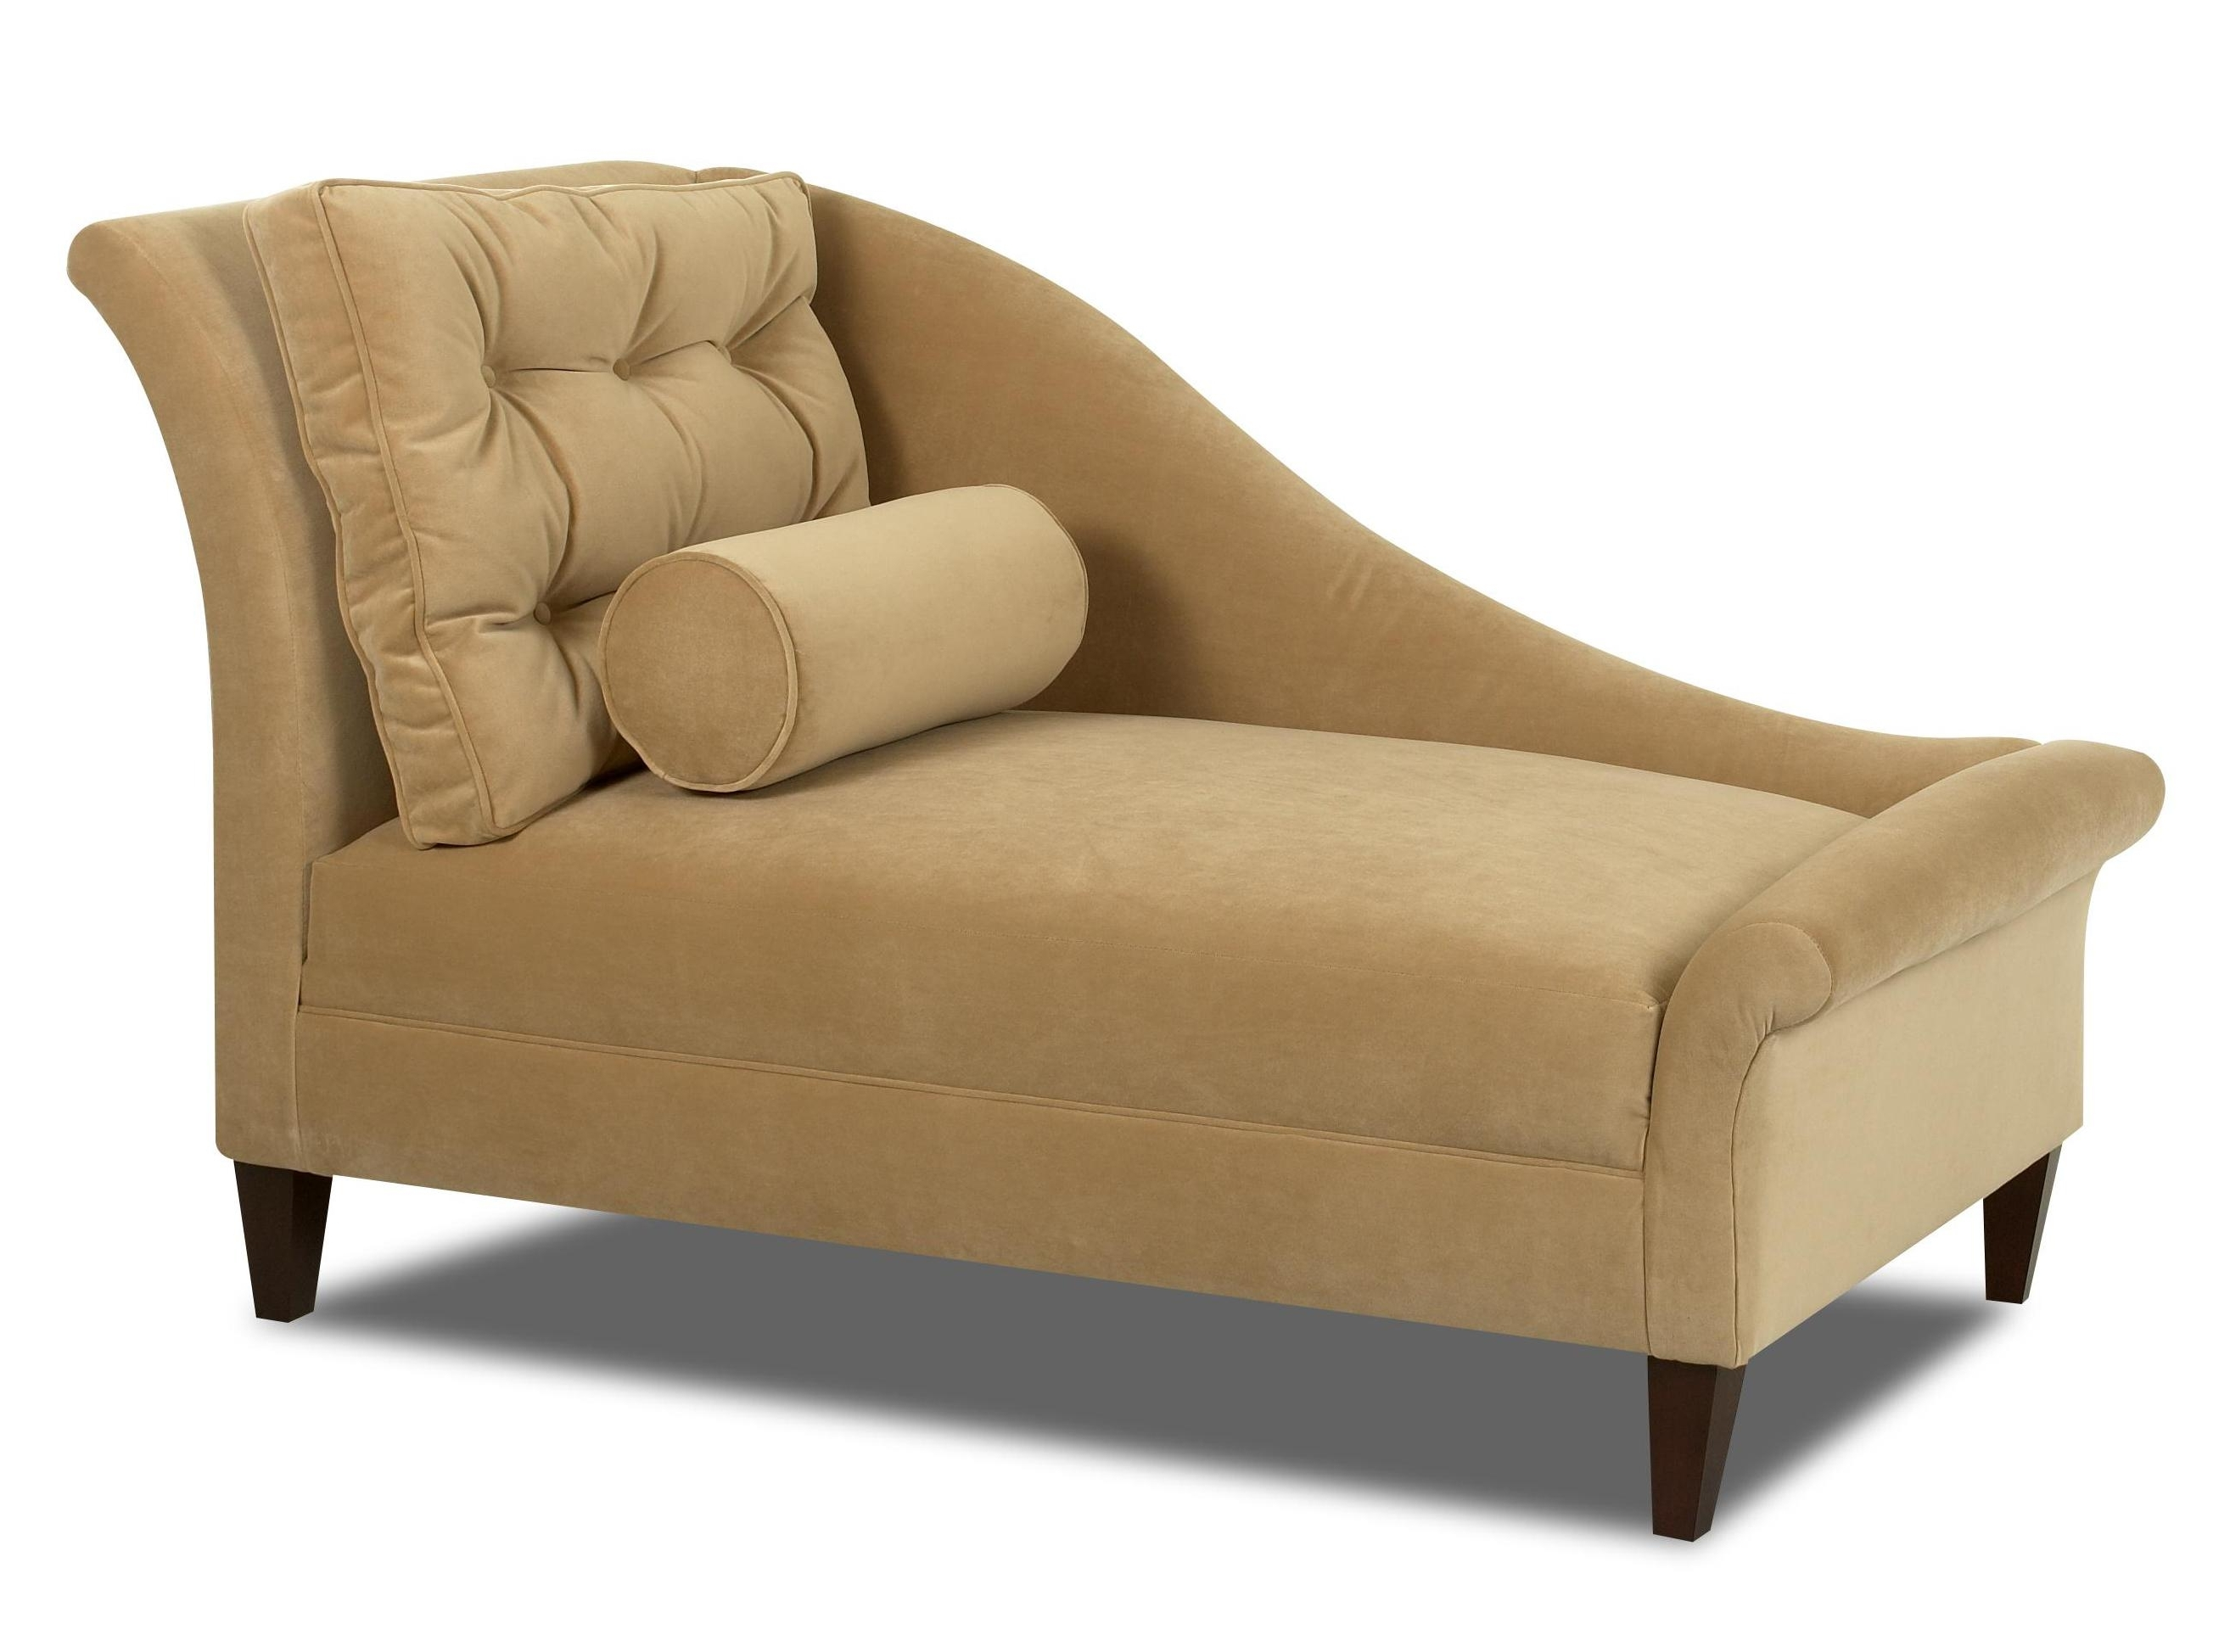 Convertible Chair : Living Room Lounge Chair Sitting Chairs Lounge In Most Popular Chaise Lounge Chairs With Two Arms (View 7 of 15)